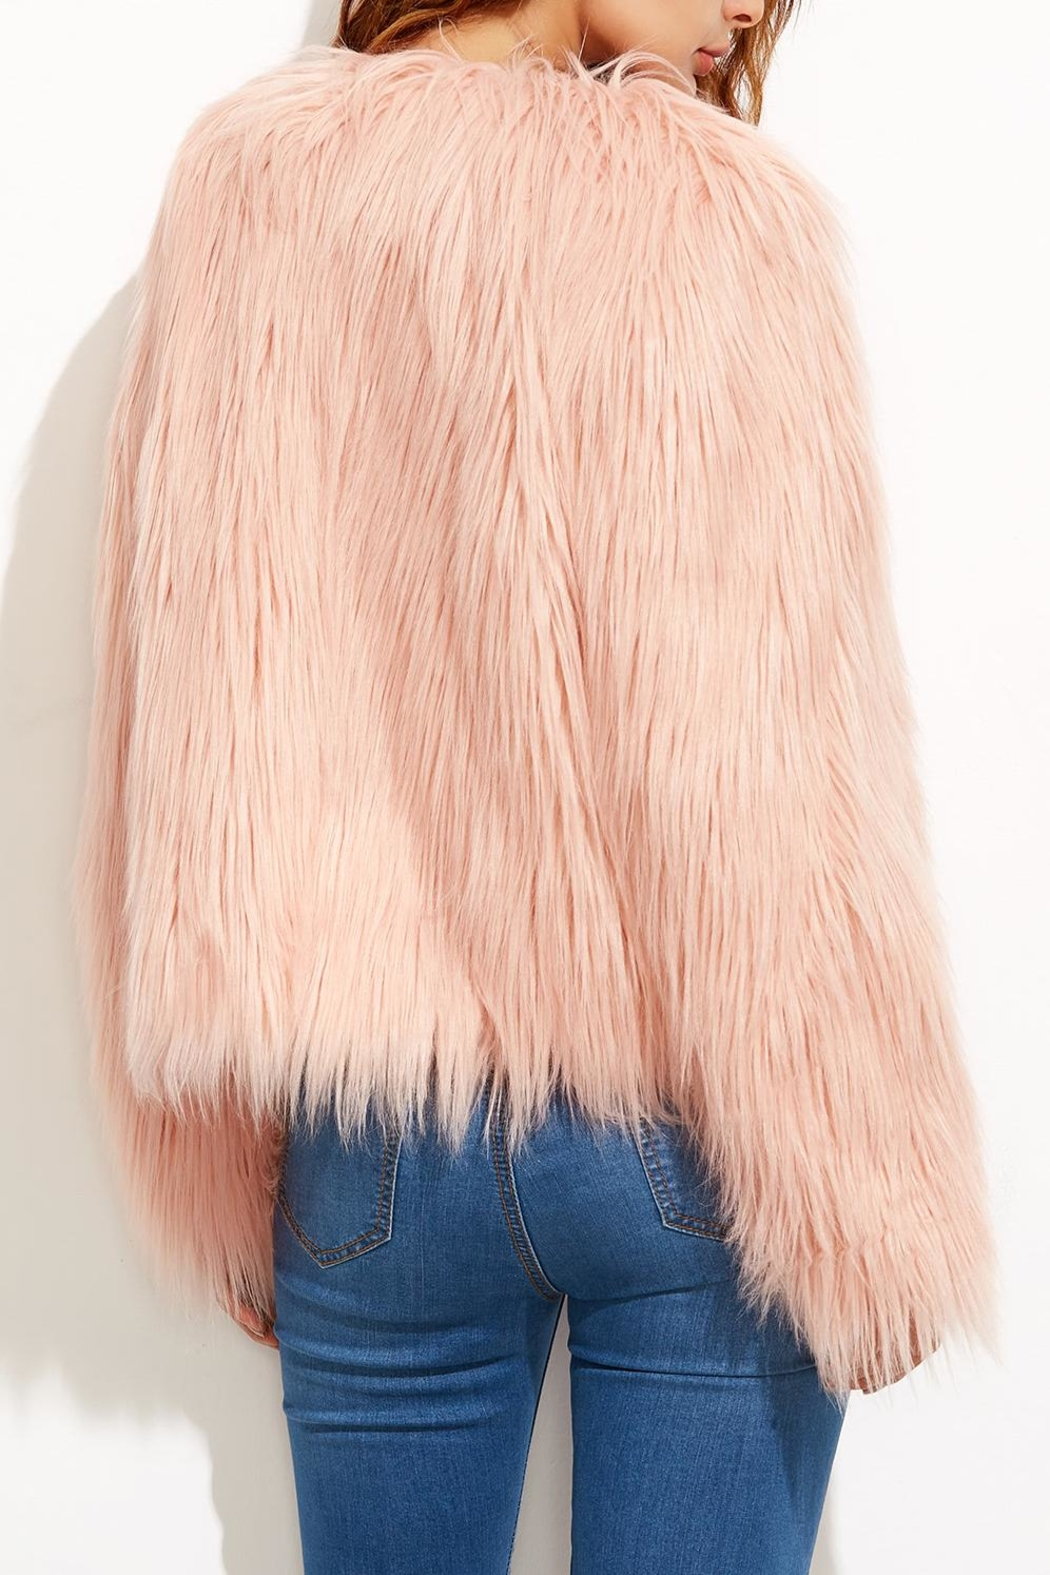 House of Atelier Faux Fur Jacket - Side Cropped Image